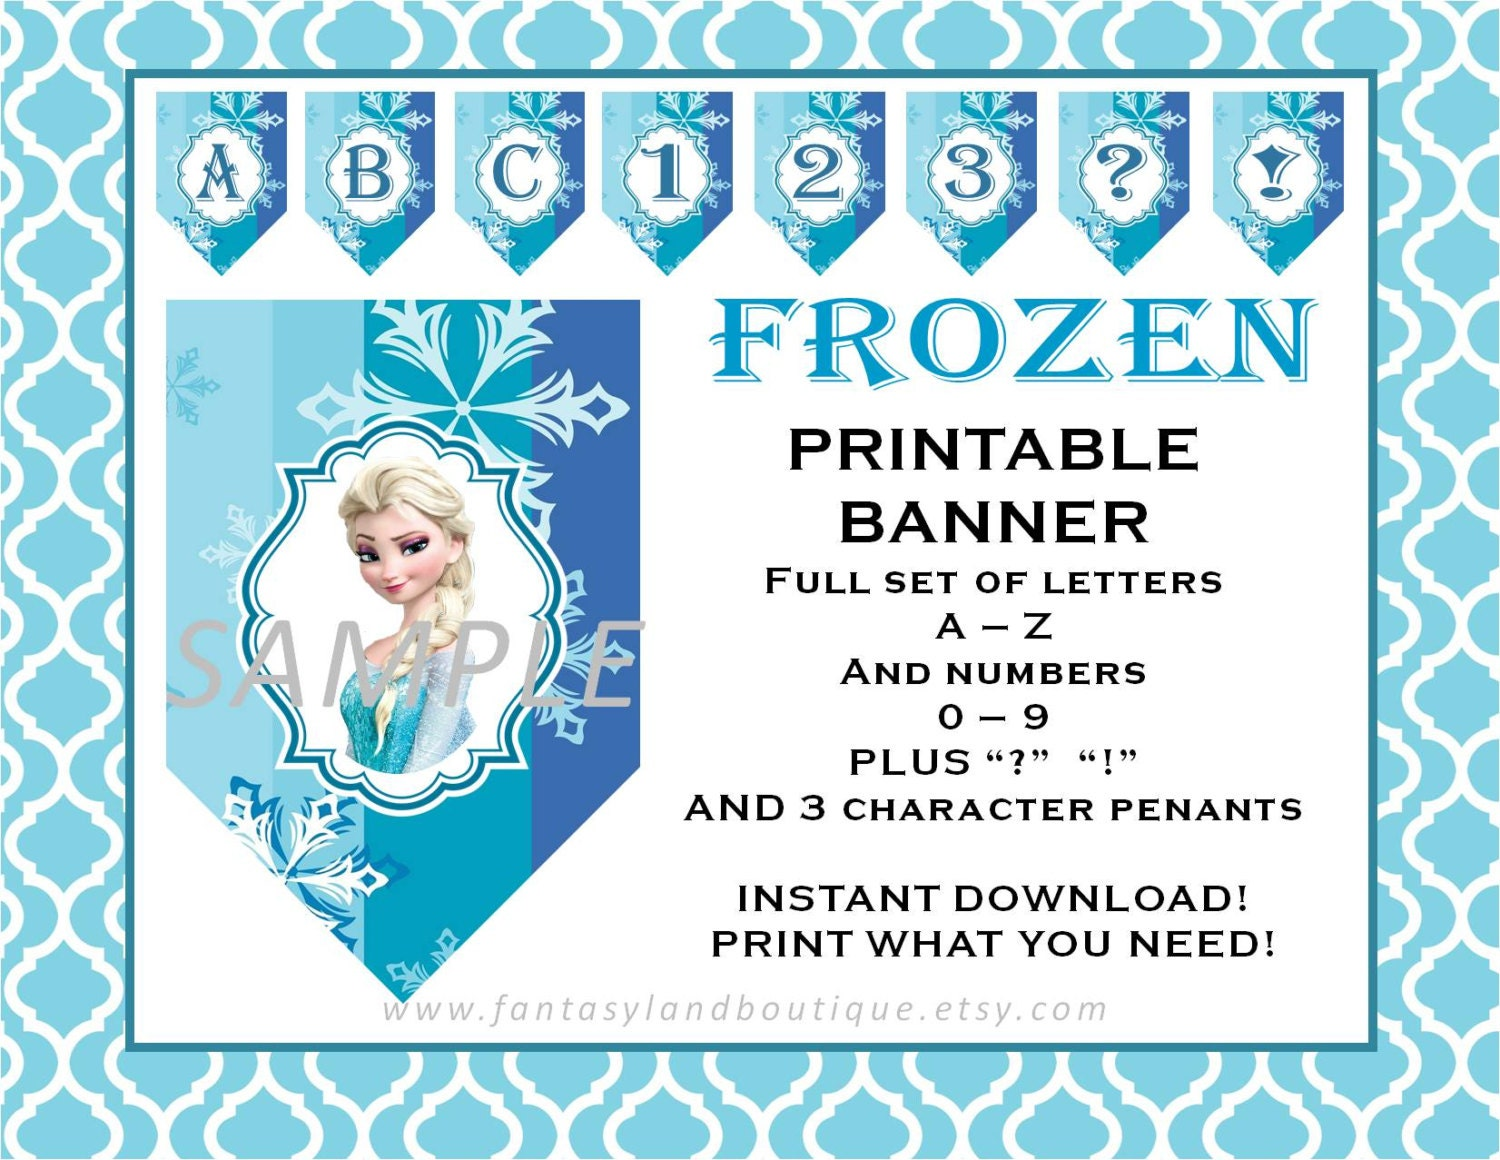 Insane image with regard to frozen banner printable